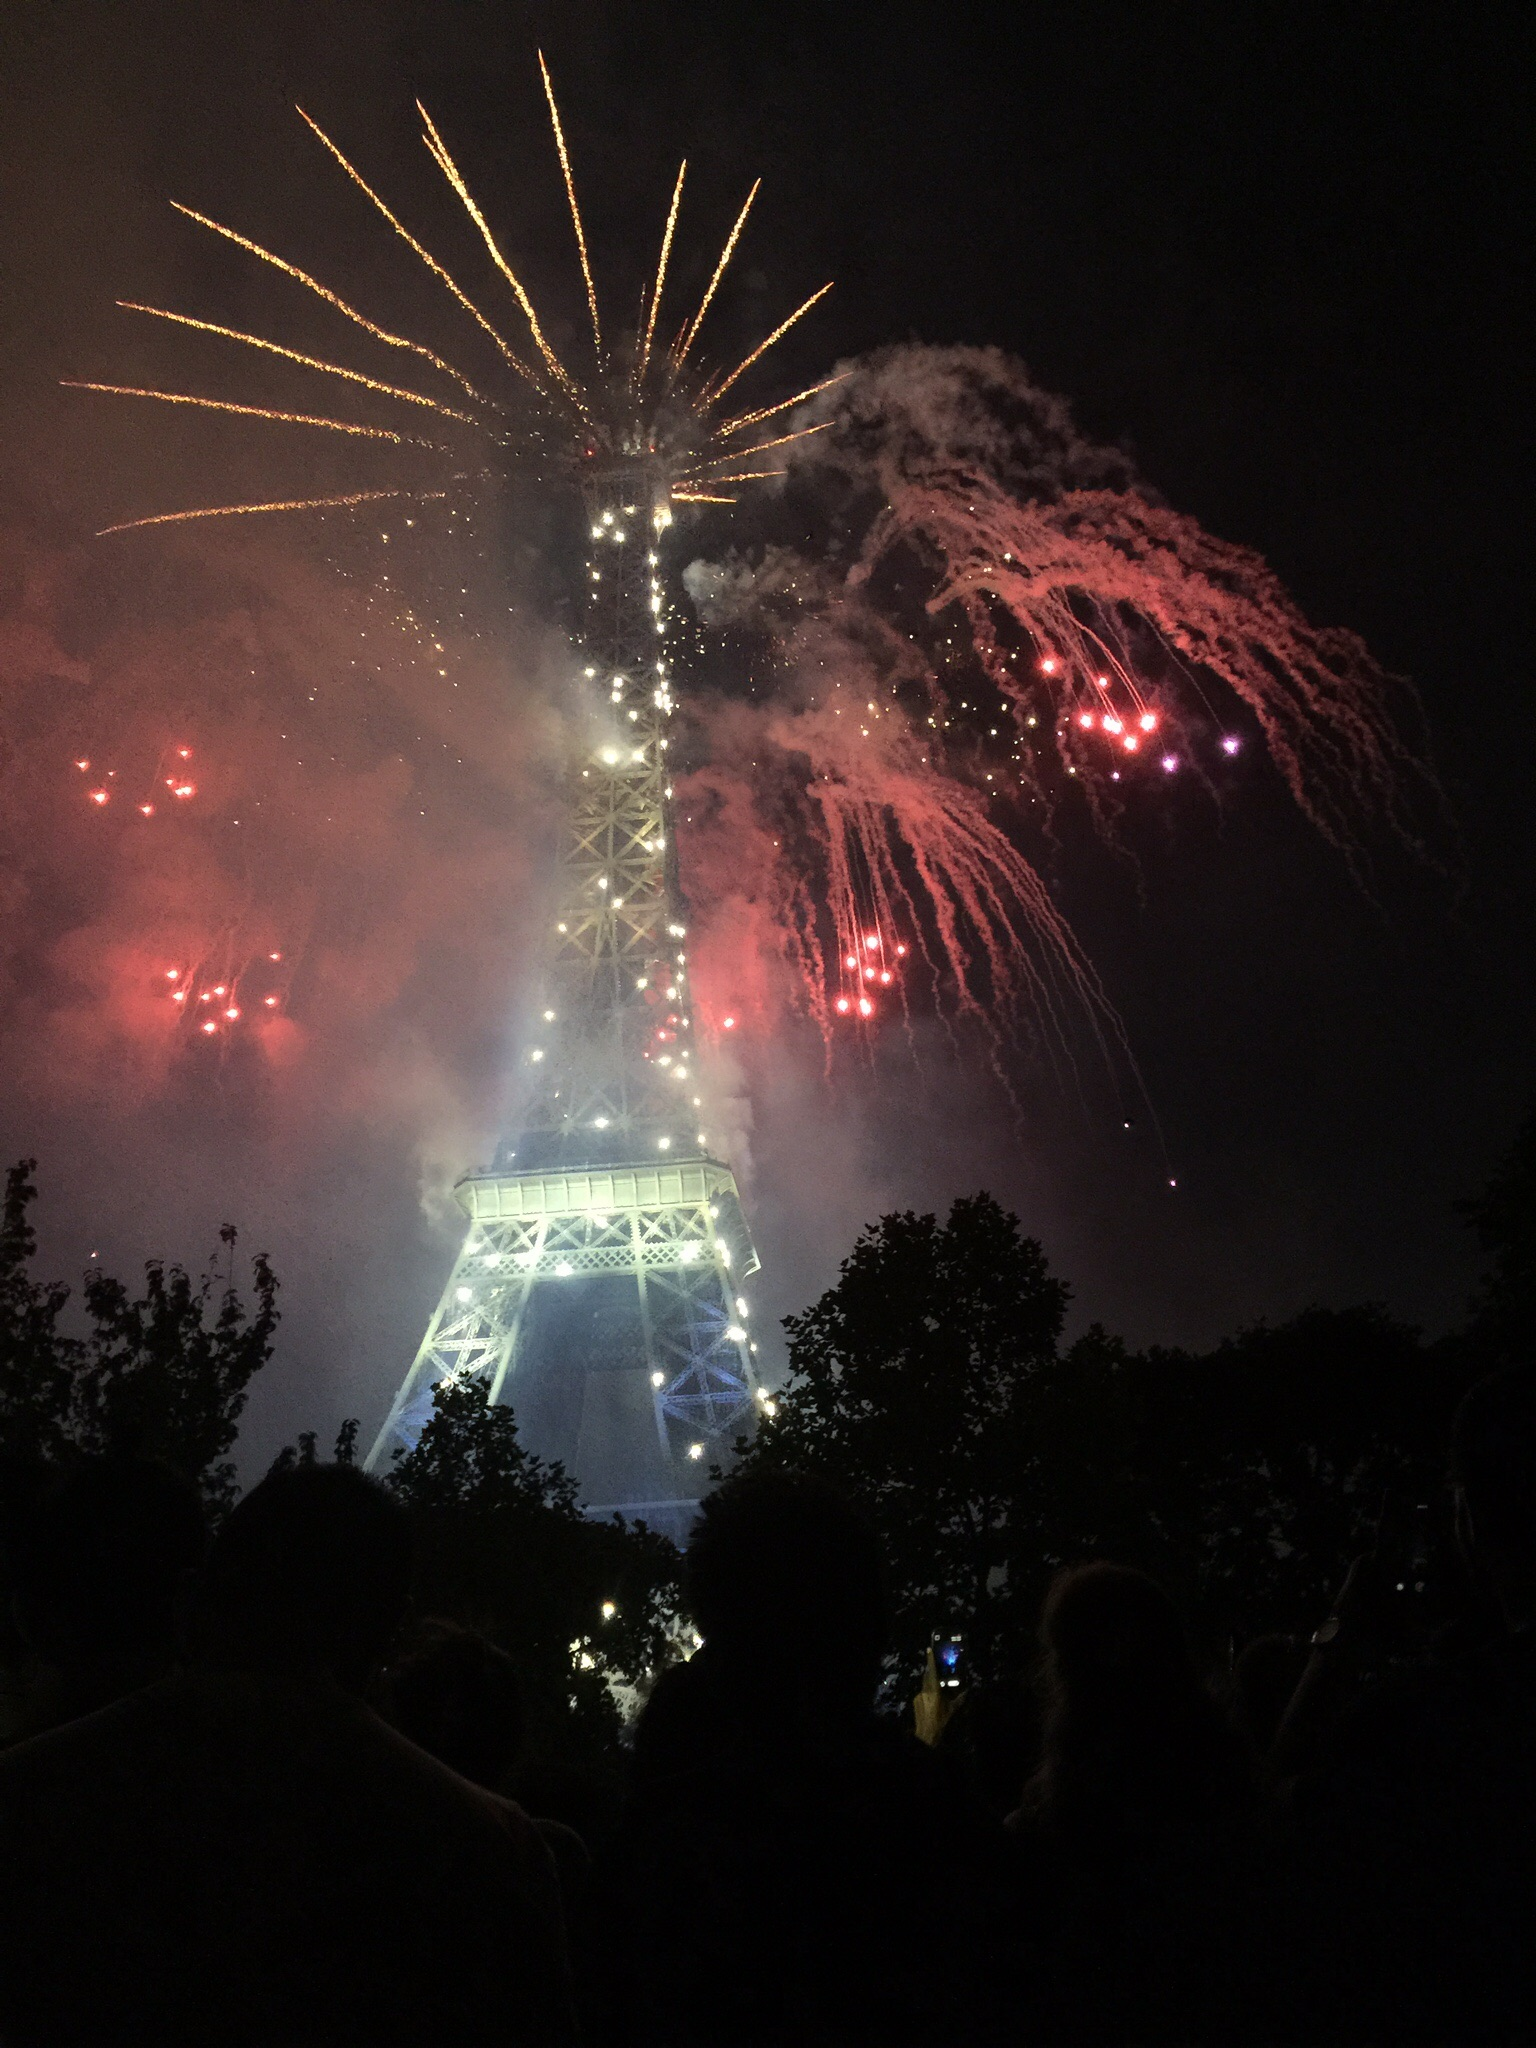 The Eiffel Tower echoing Lady Liberty